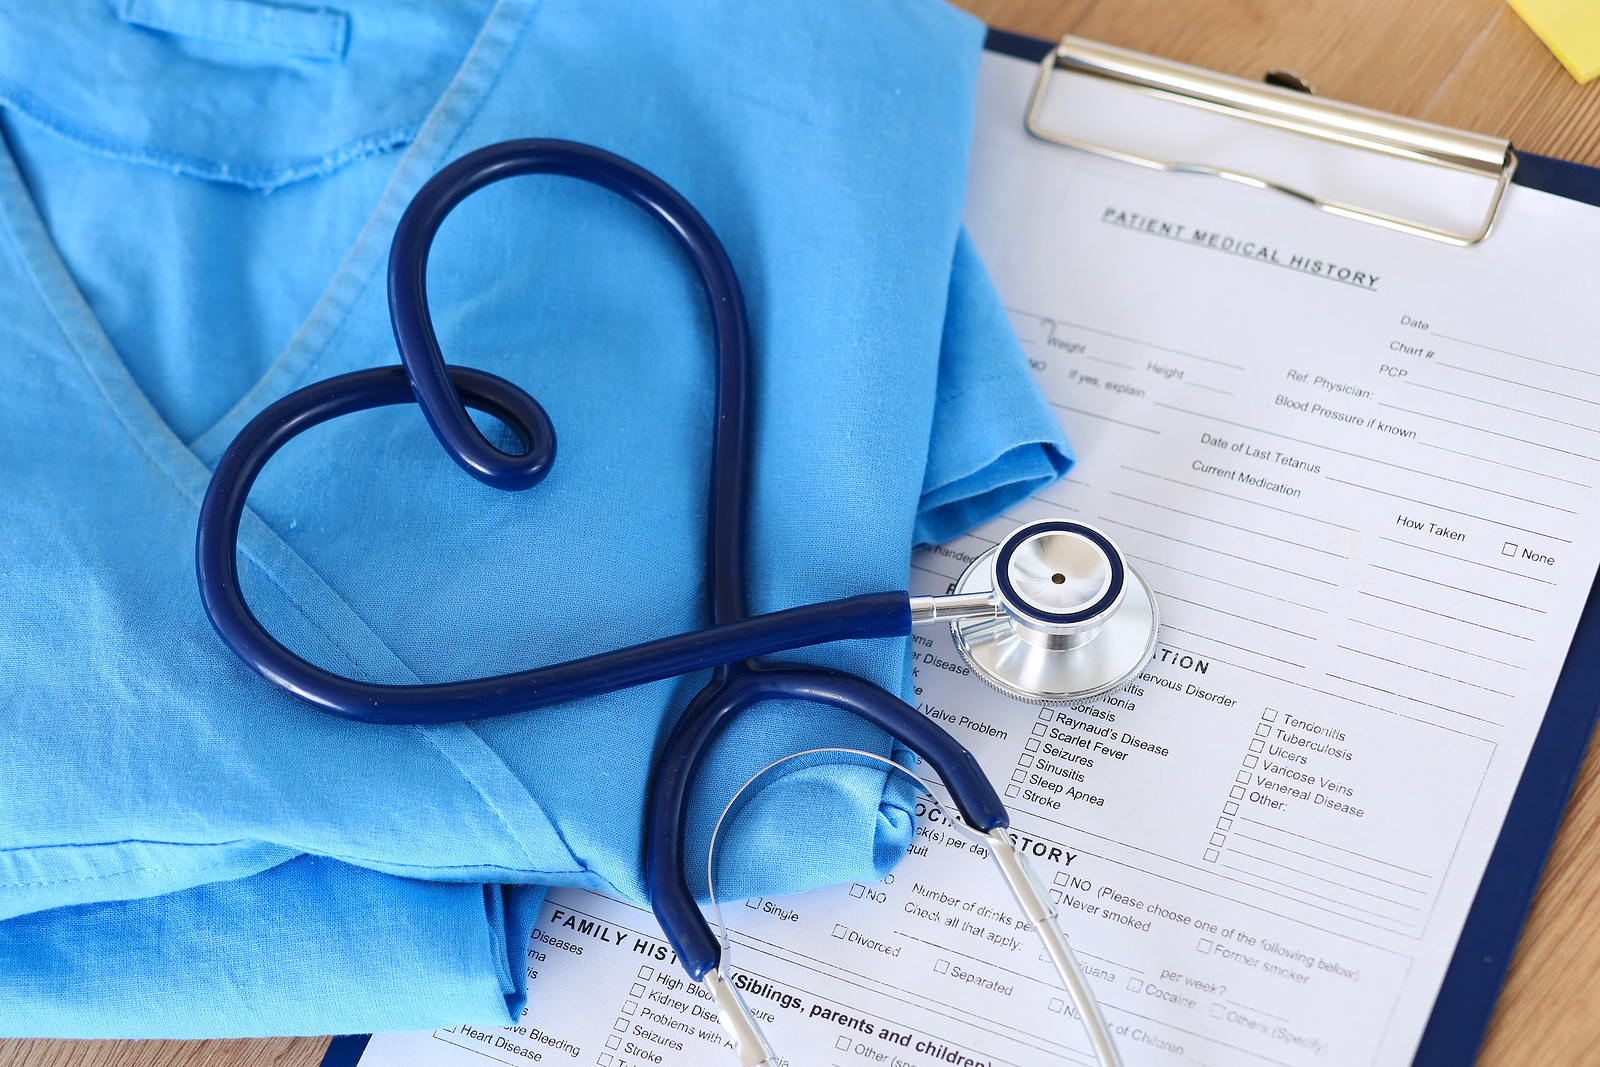 Medical stethoscope twisted in heart shape lying on patient medical history list and blue doctor uniform closeup. Medical help or insurance concept. Cardiology care health protection and prevention